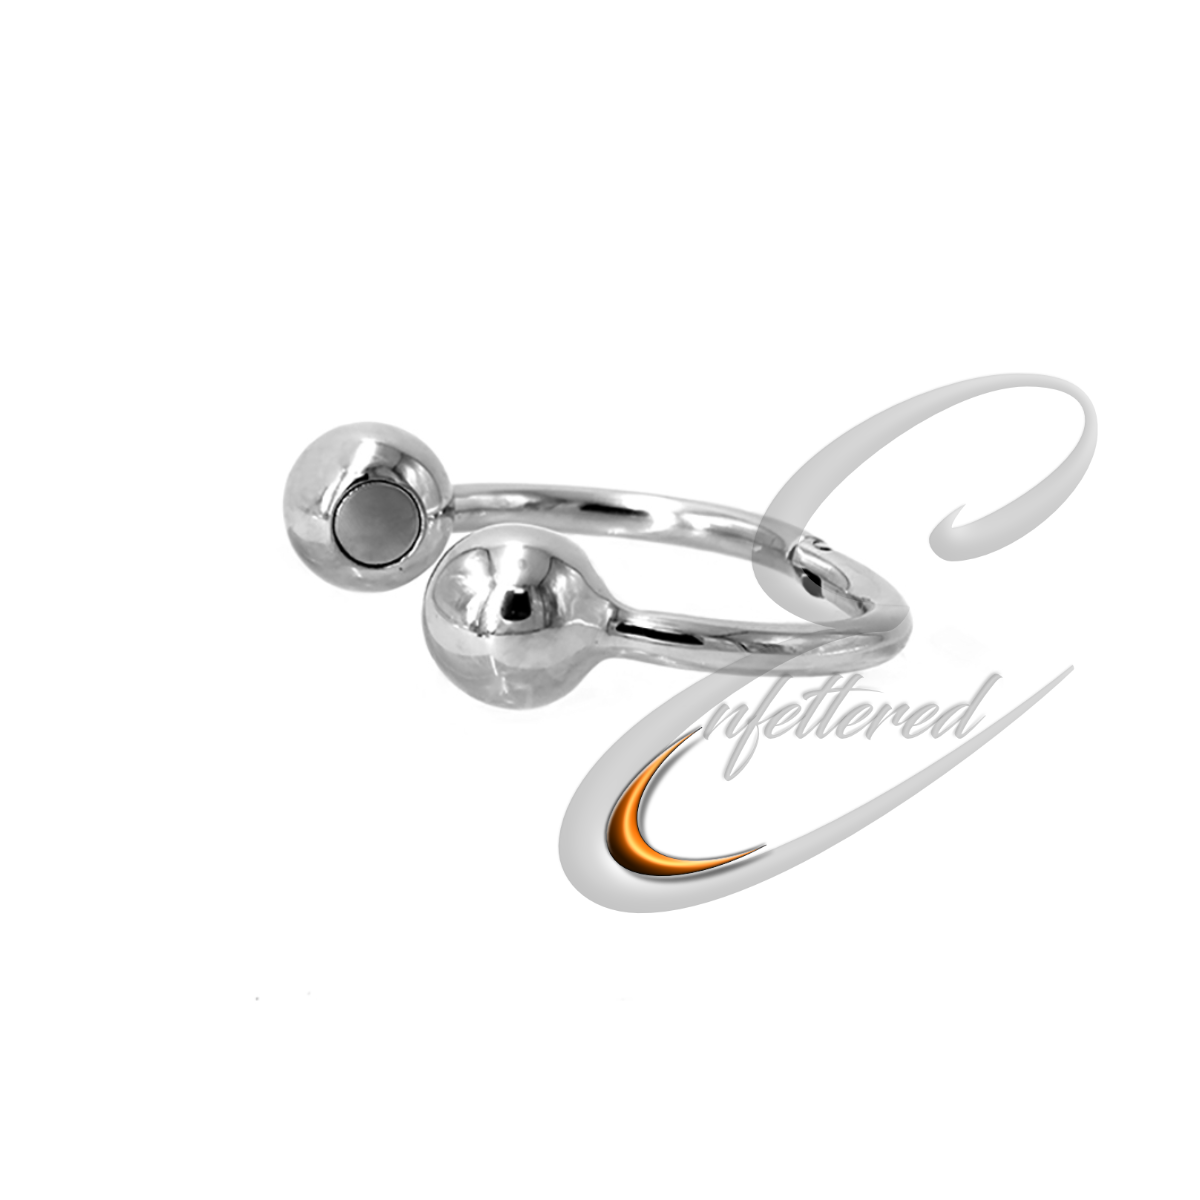 Enfettered Stainless Steel Magnetic Cock Ring